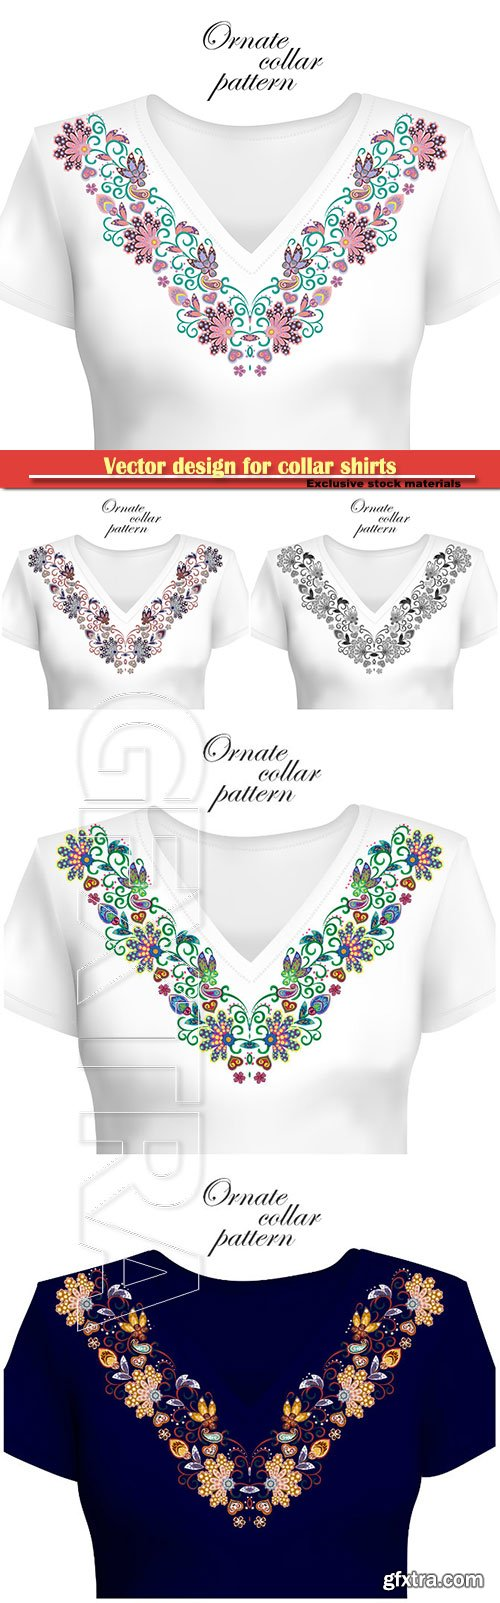 Vector design for collar shirts, ethnic flowers neck